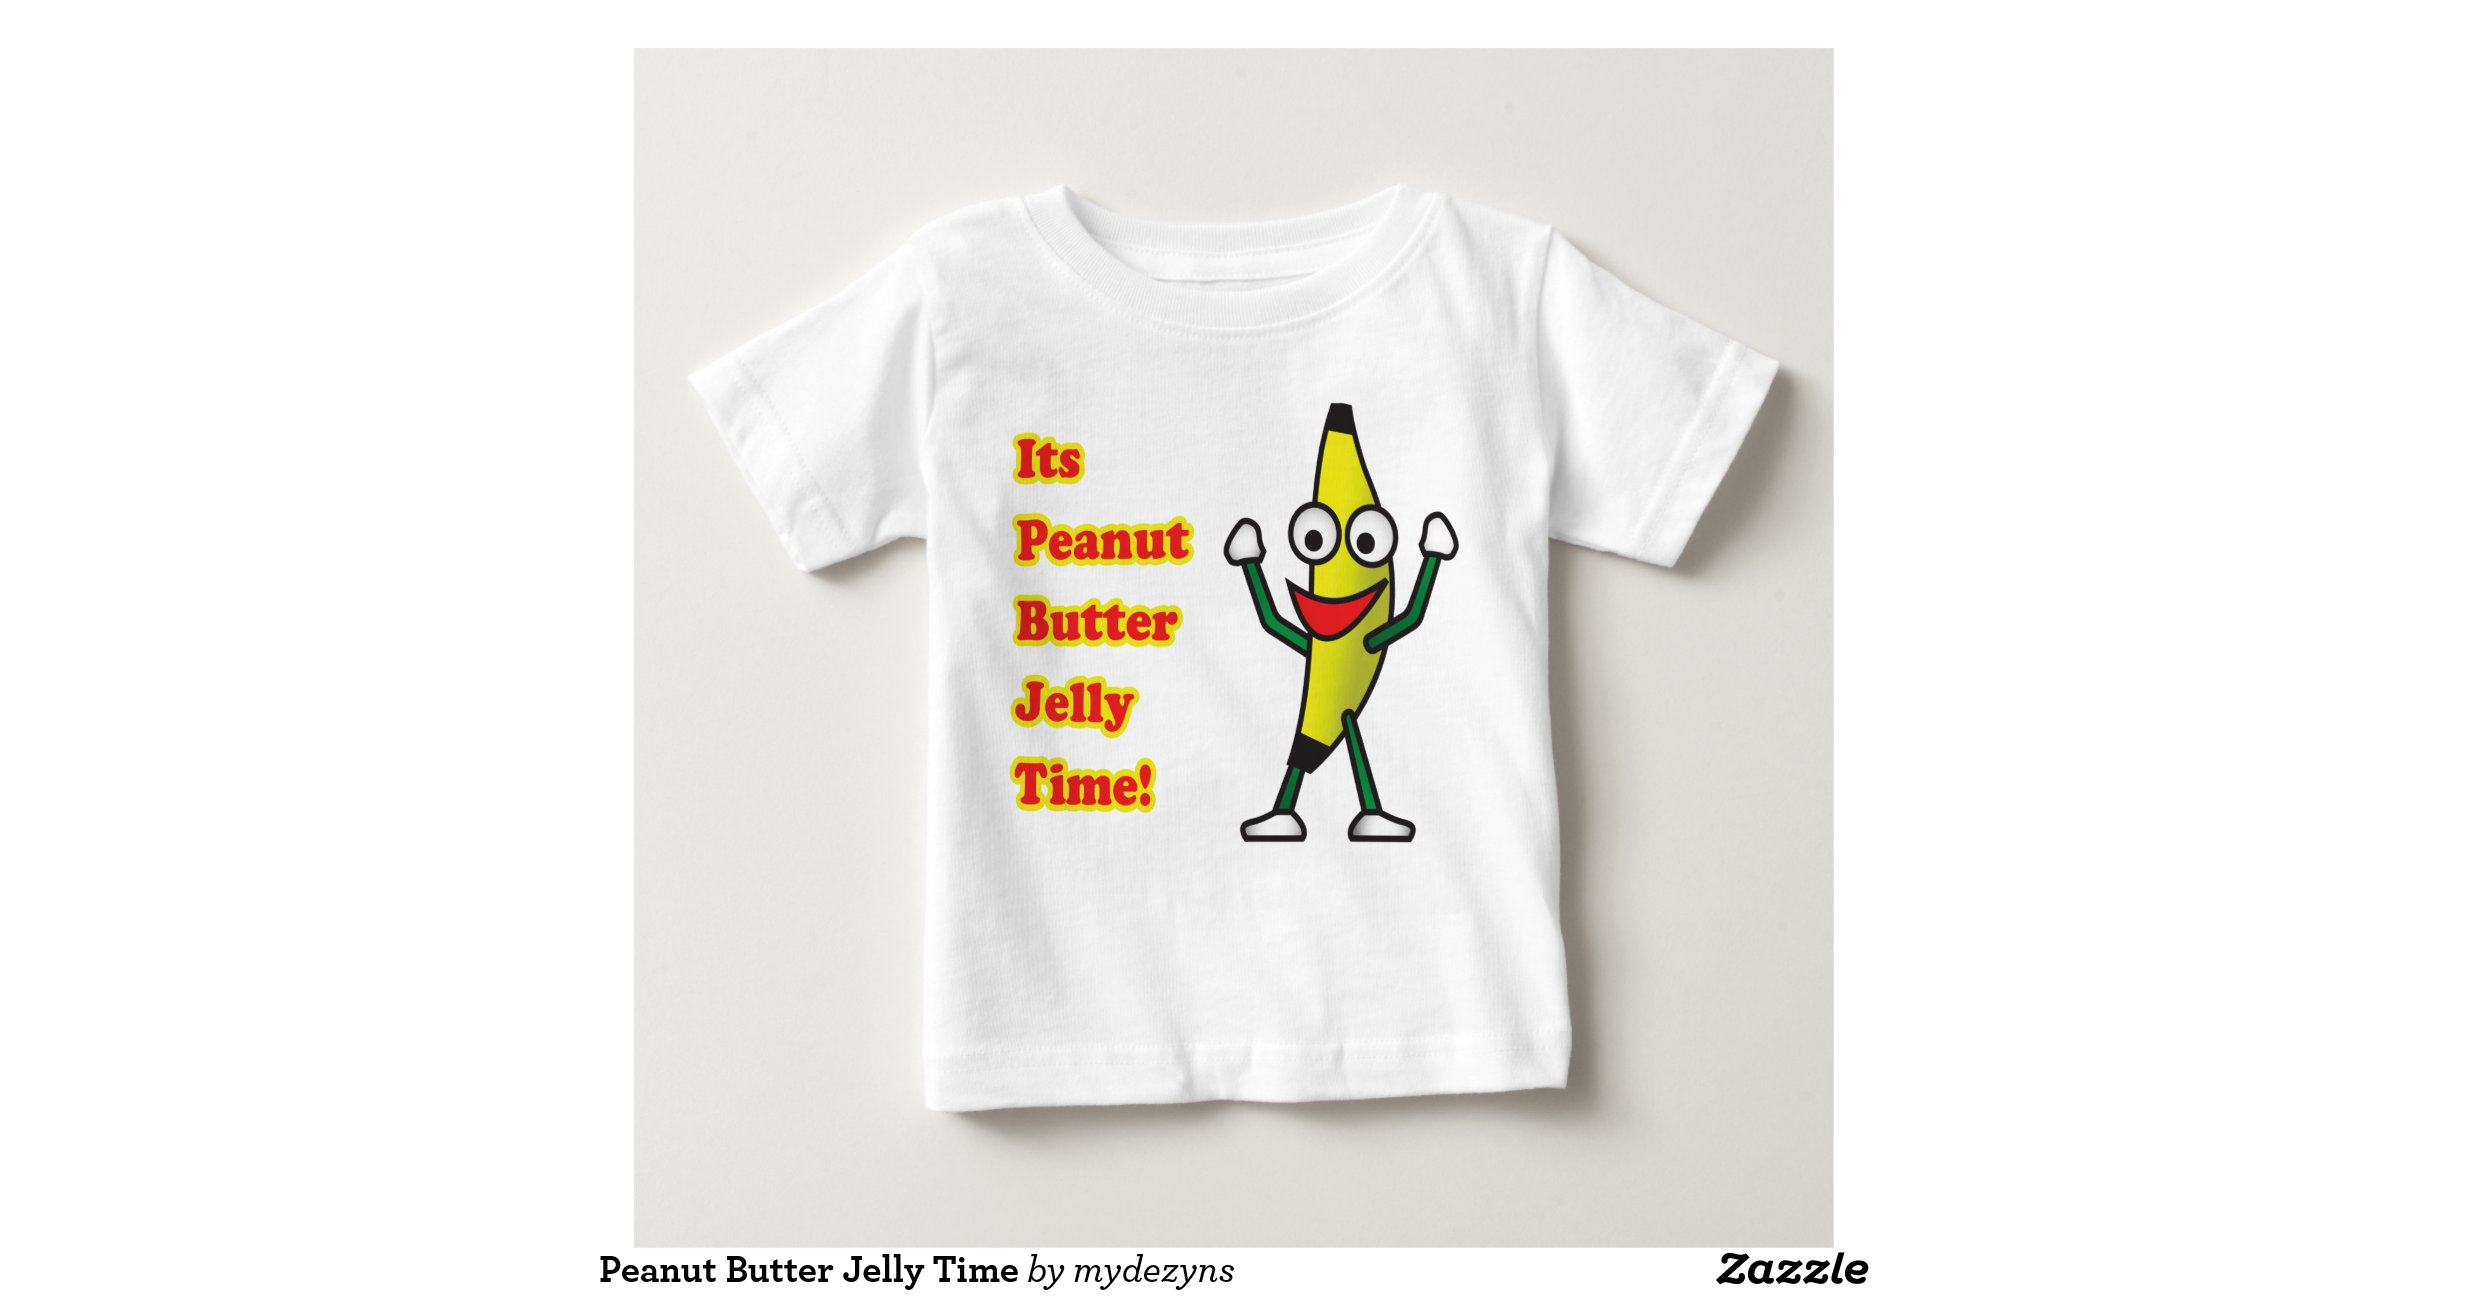 Peanut butter jelly time t shirts zazzle for Peanut butter t shirt dress